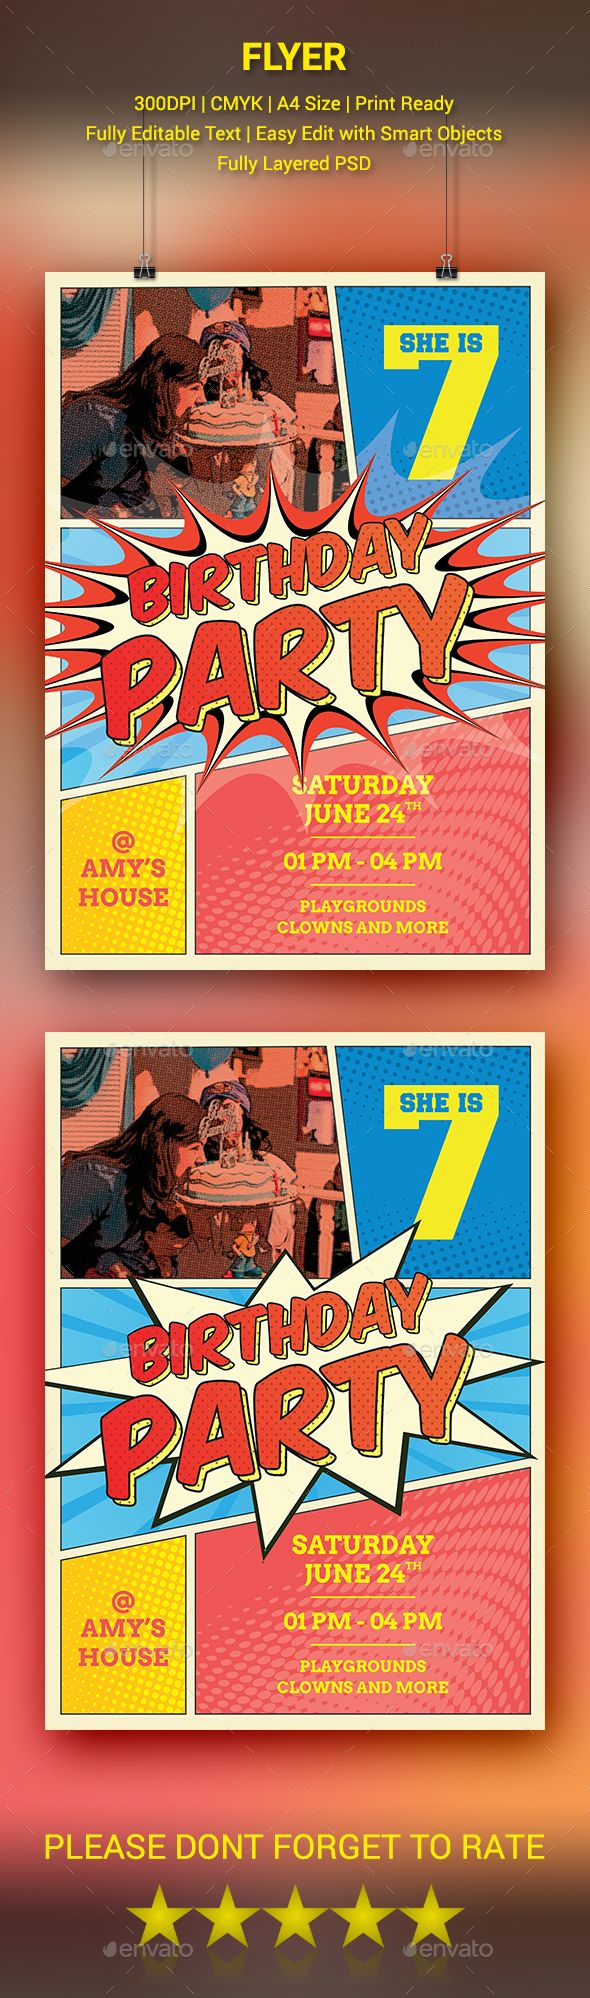 Comic Style Birthday Flyer - Clubs & Parties Events Download here: https://graphicriver.net/item/comic-style-birthday-flyer/20034379?ref=classicdesignp